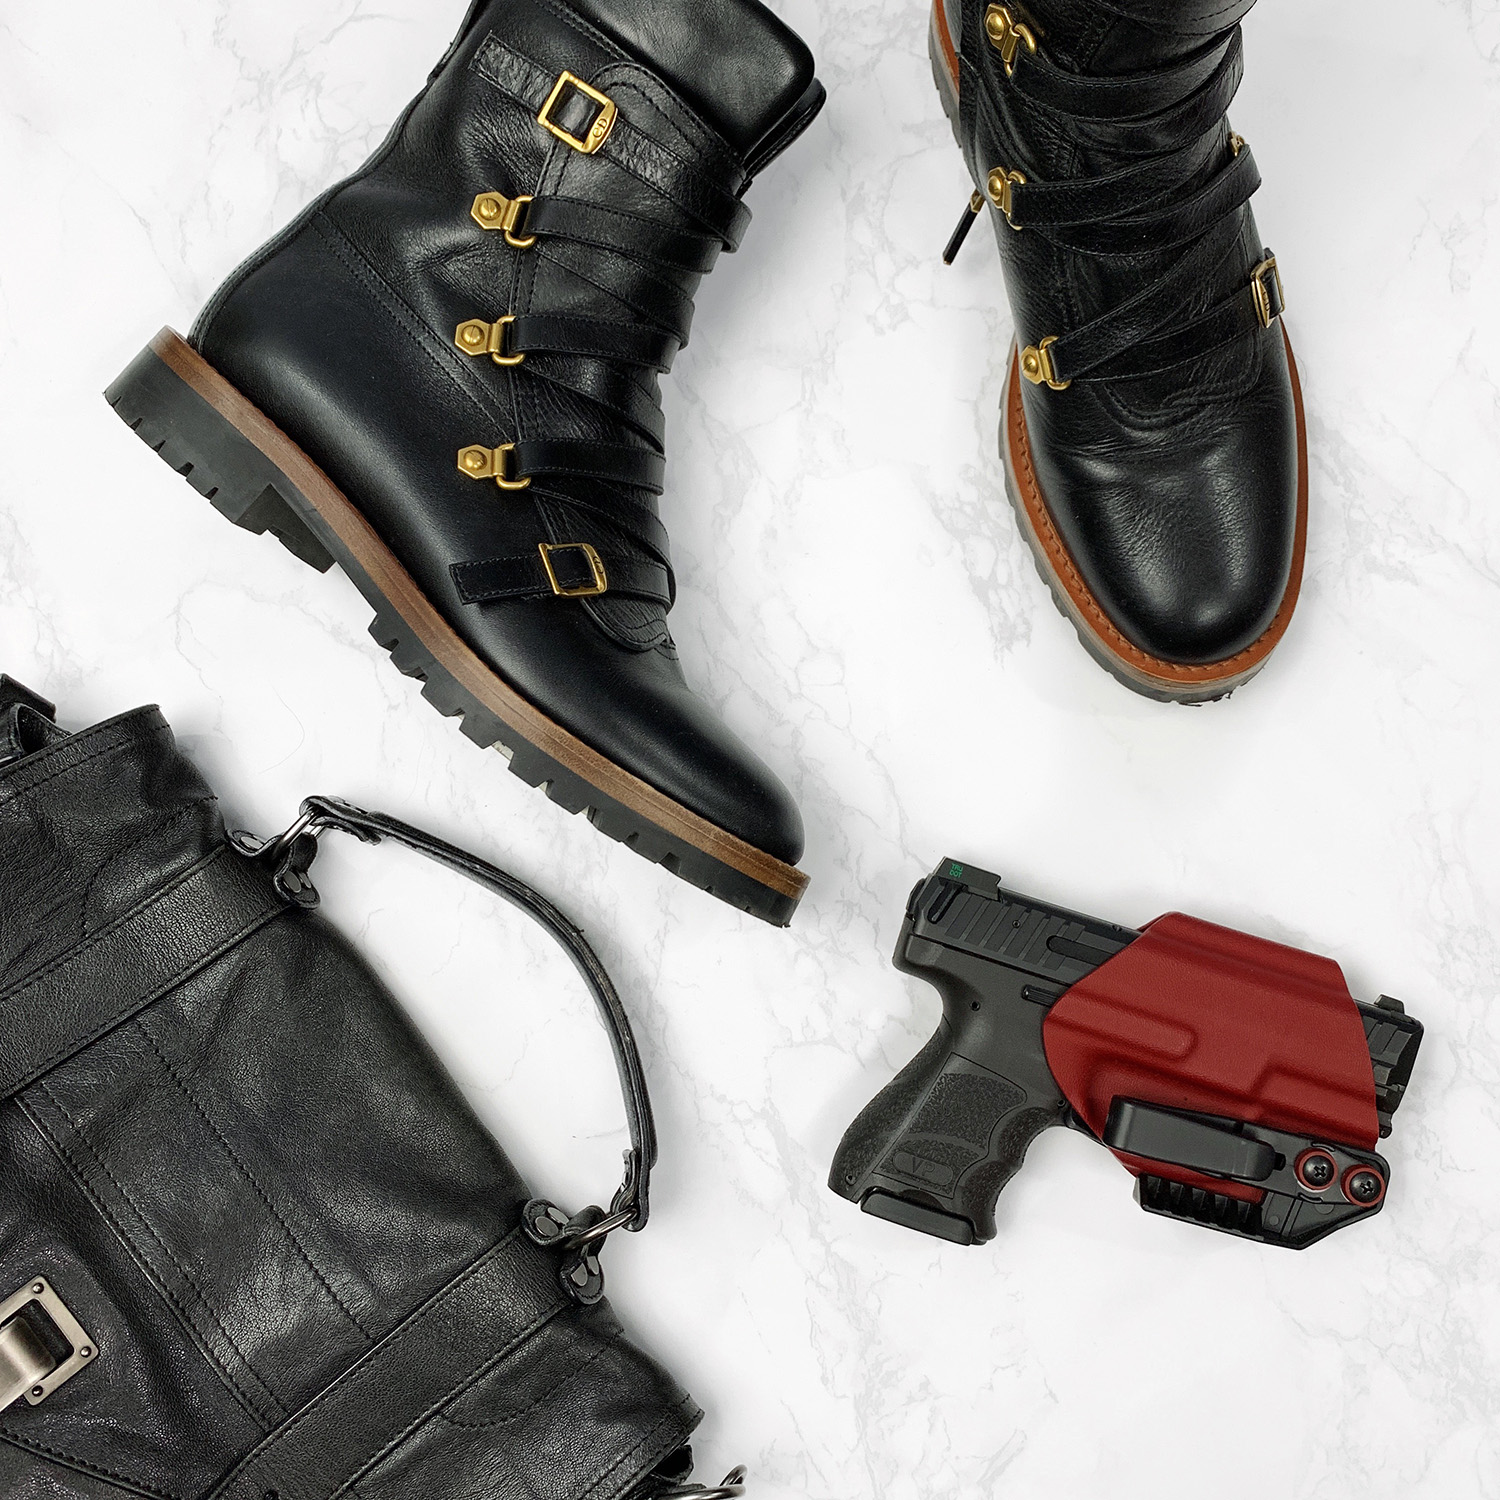 Dior Boots, Holsters for Women